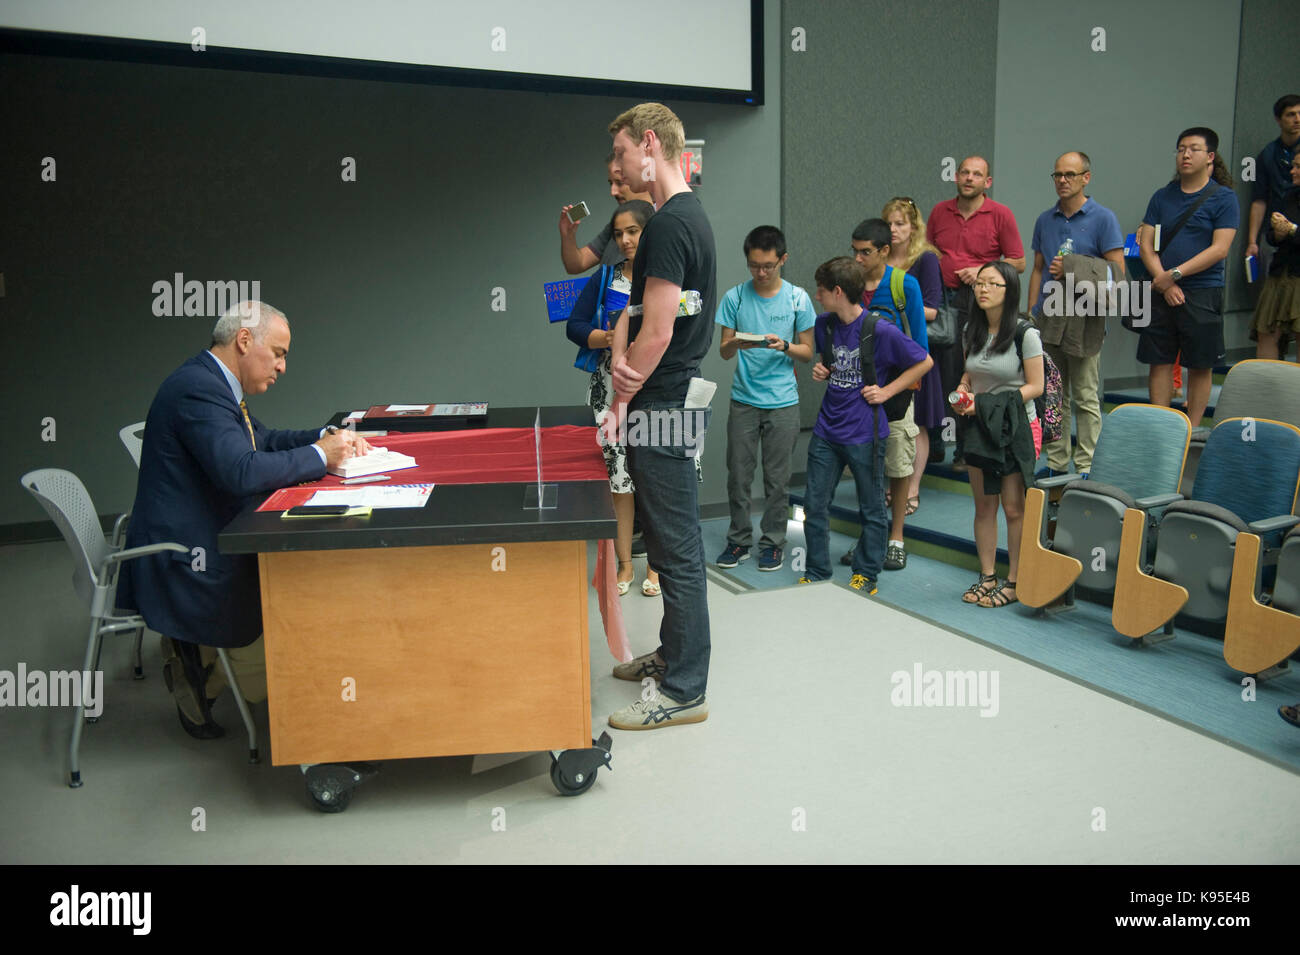 Anti-Putin Russian dissident Garry Kasparov signs his book 'Winter is Coming' at the Starr Form at MIT. - Stock Image